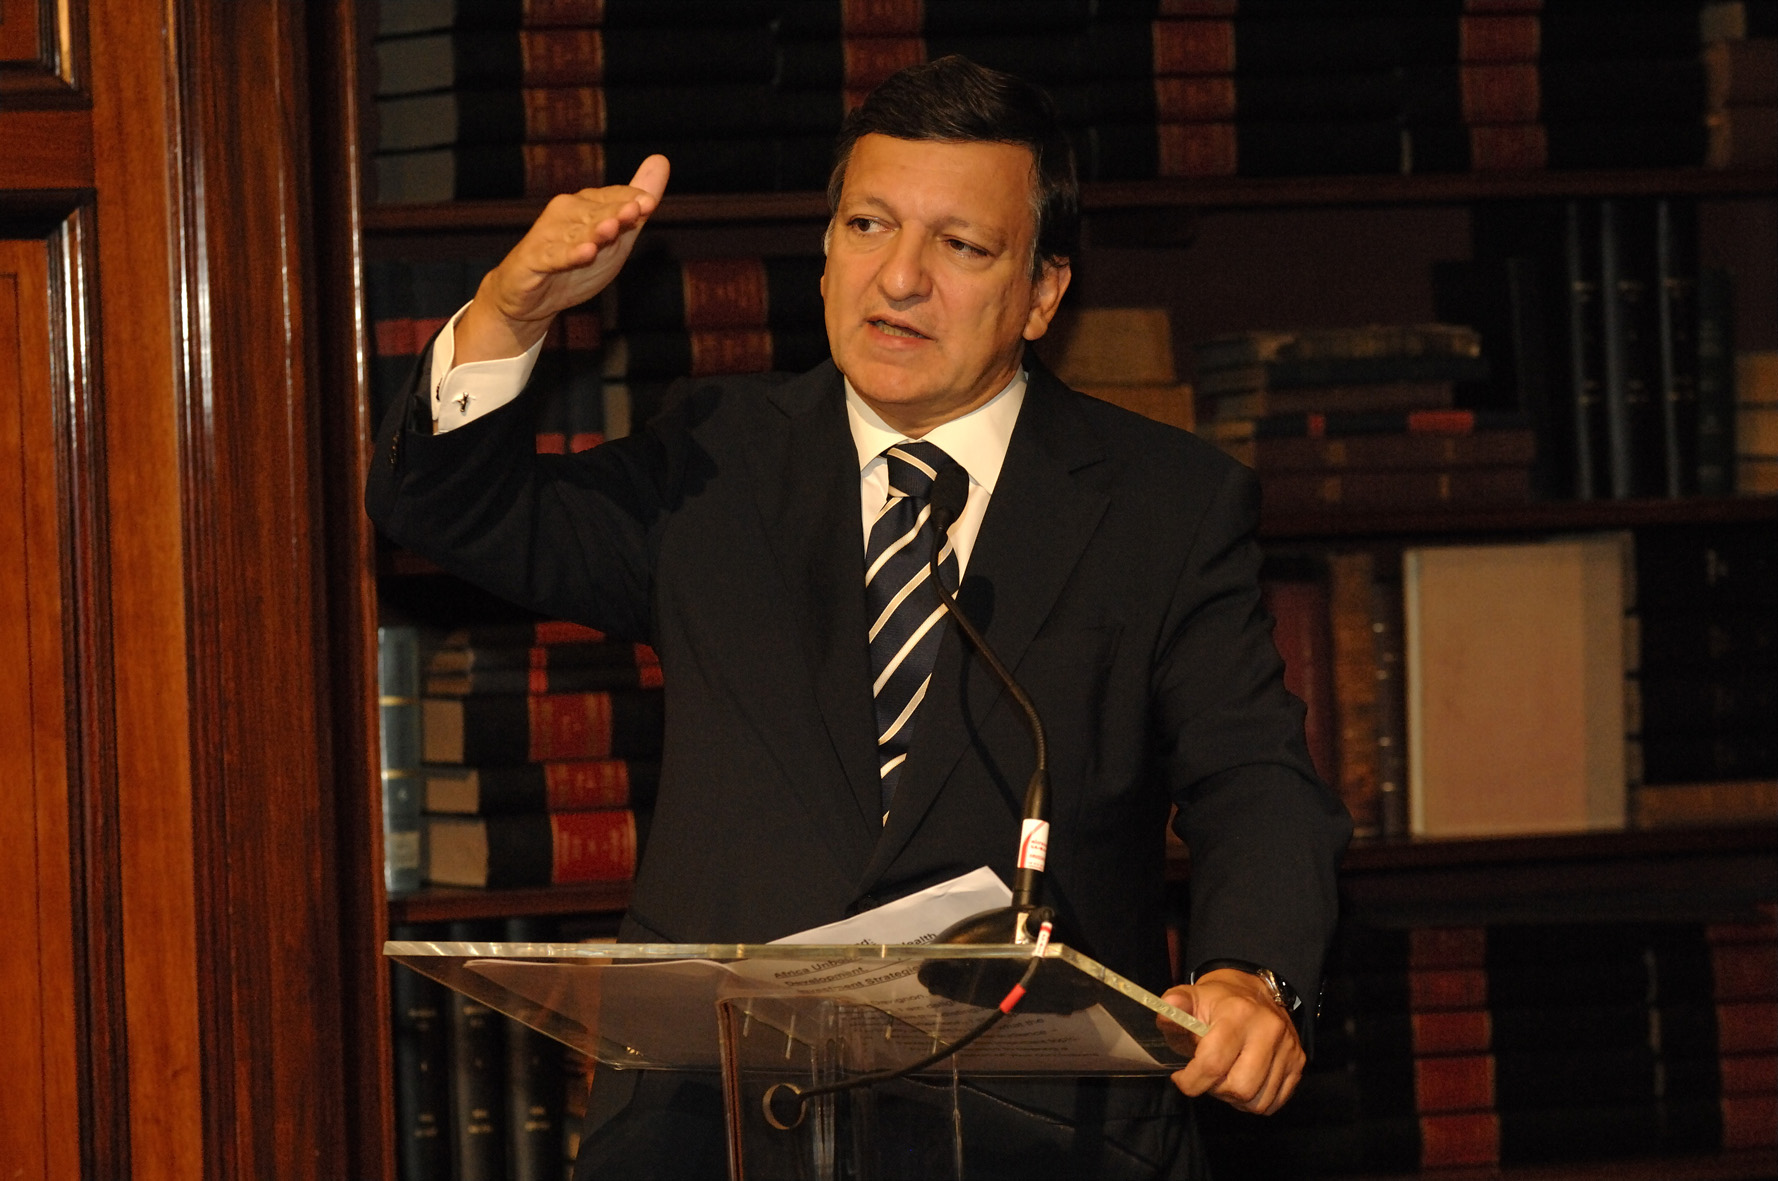 Speech by José Manuel Barroso, President of the EC, at the